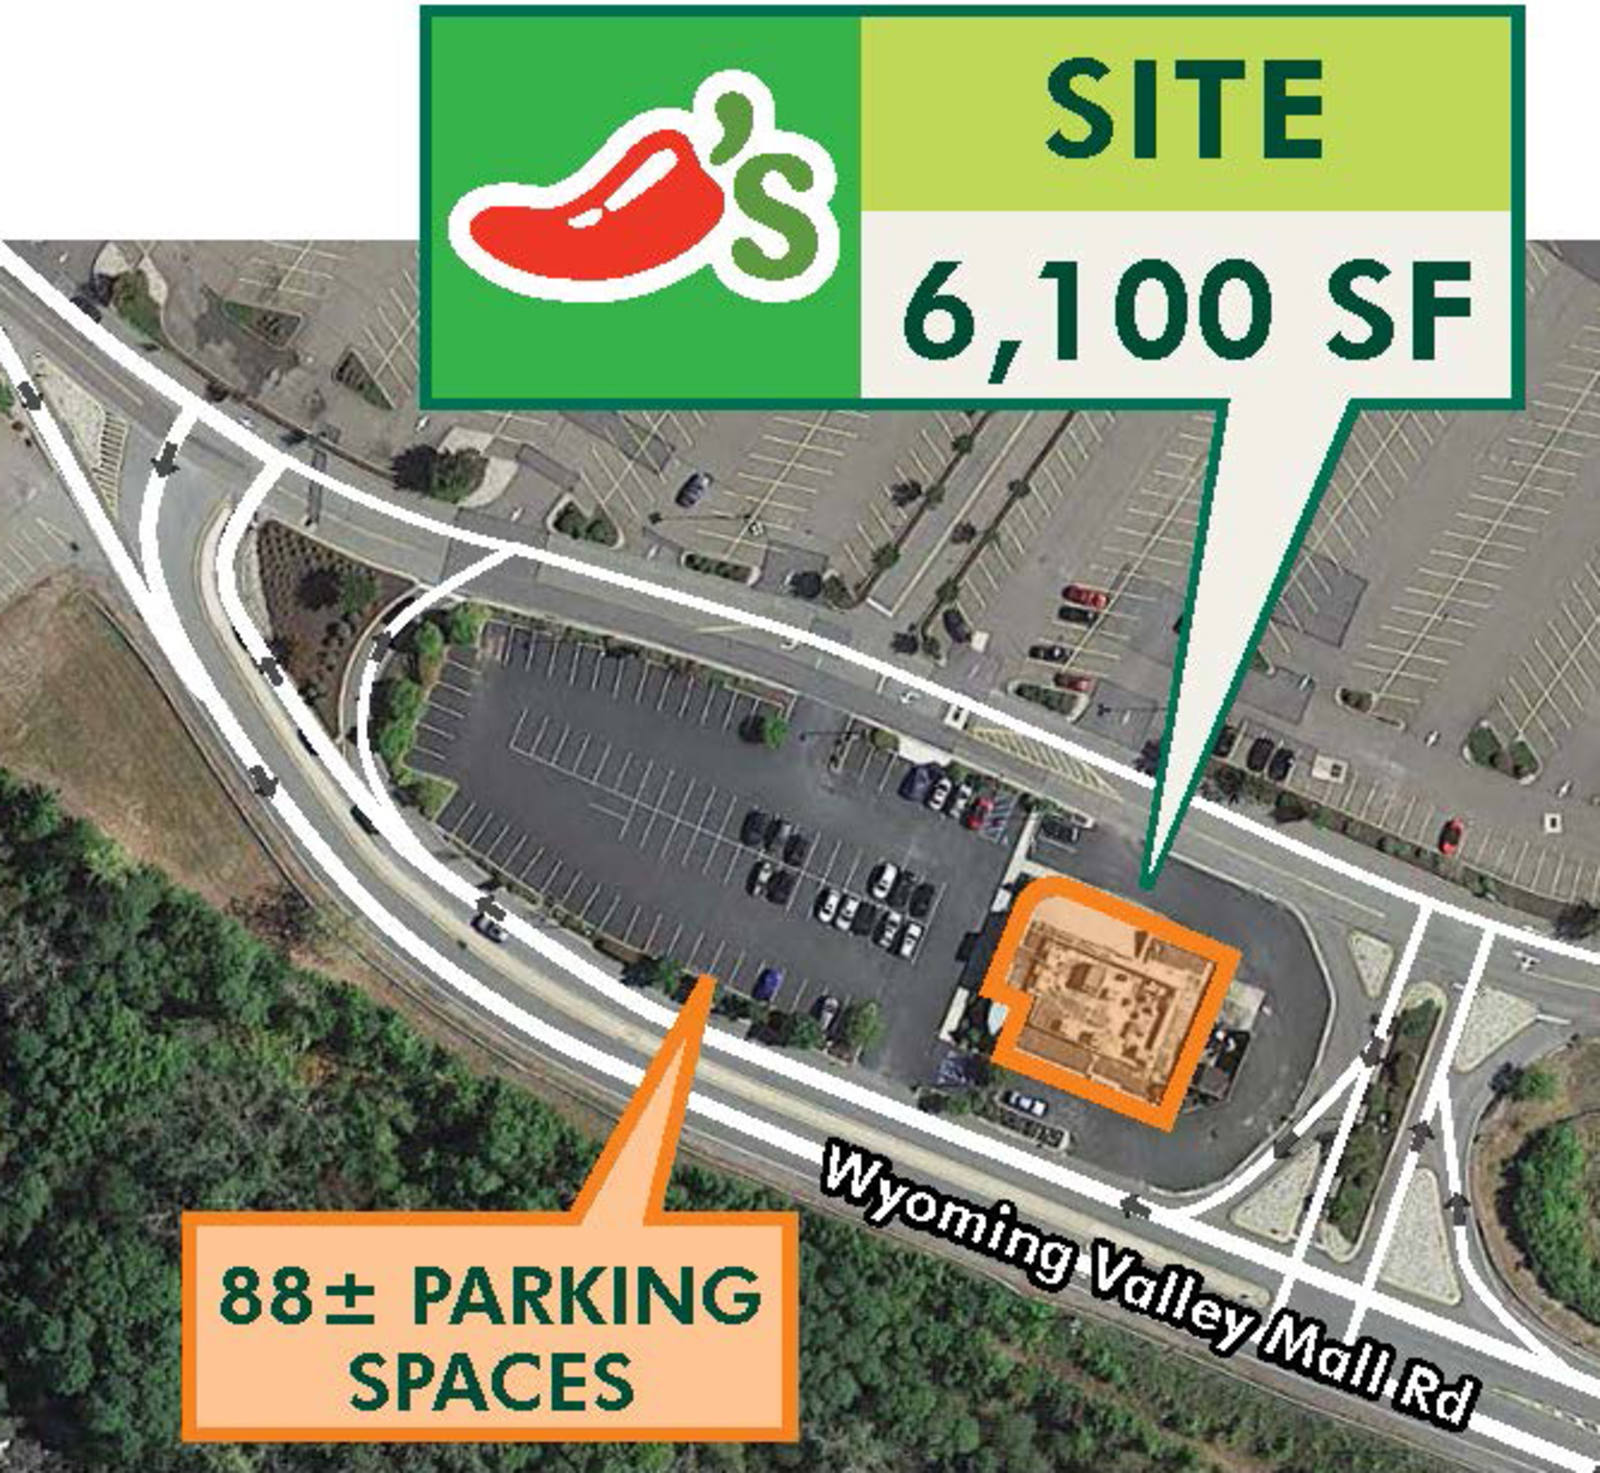 CBRE Retail6,100 SF Restaurant Pad Build-Out in Wilkes-Barre Twp, PA - 375 Wyoming Valley Mall Rd 375 Wyoming Valley Mall Rd  Photo